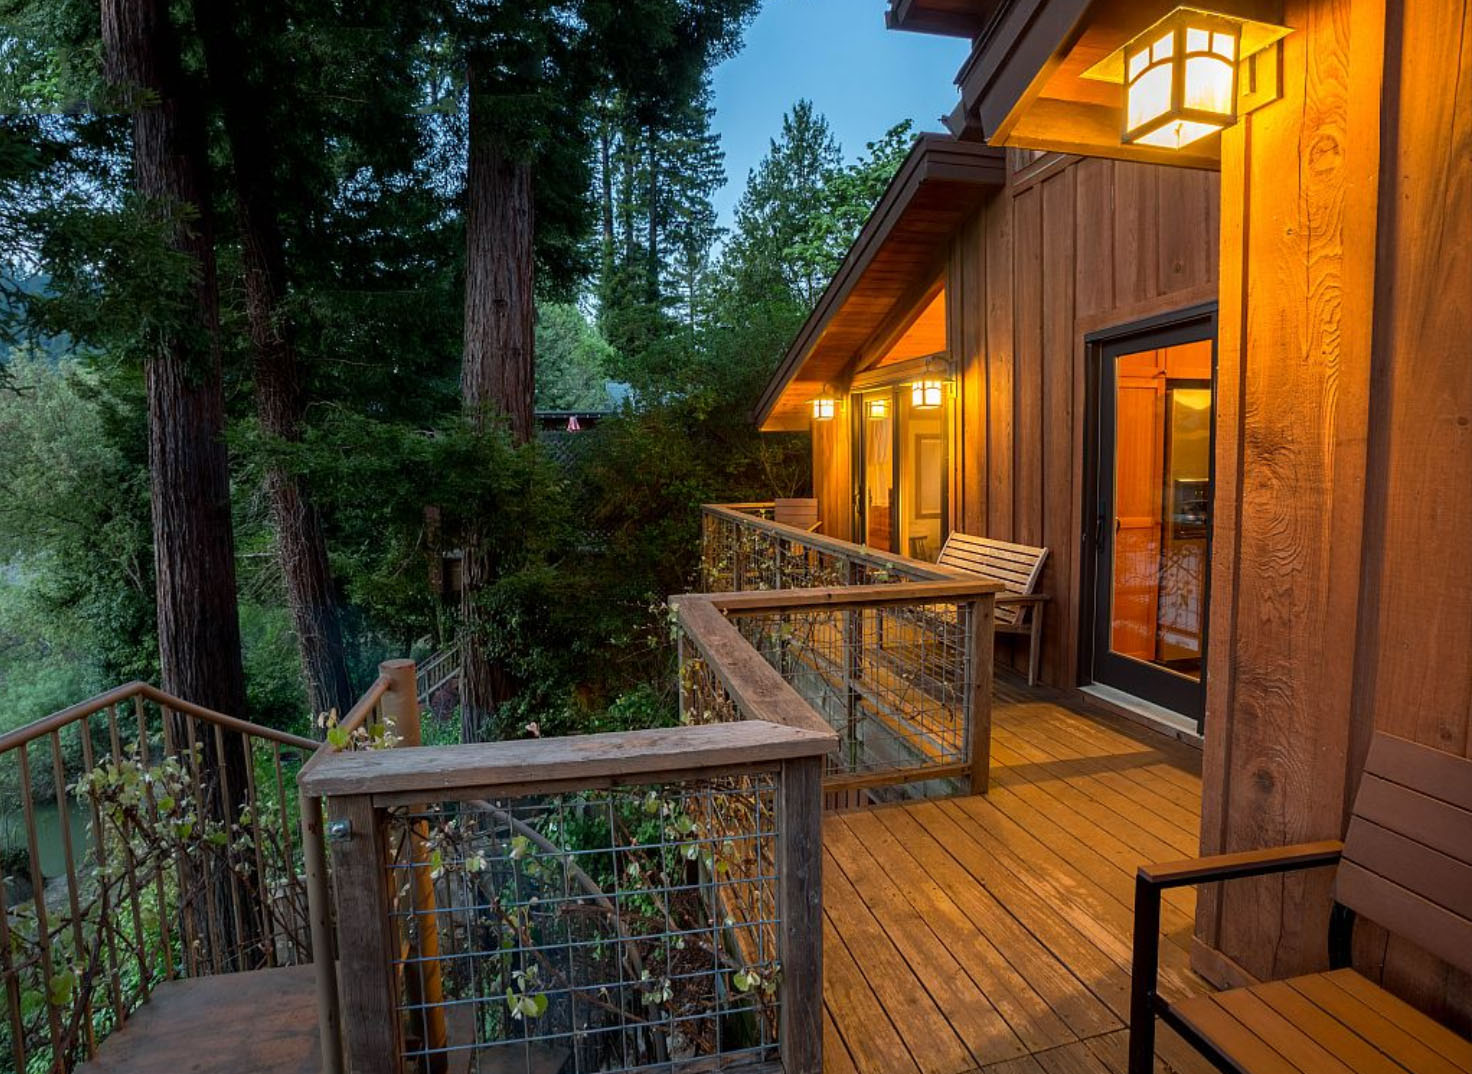 Russian river vacation rentals replacing homes for sale in for Russian river cabins